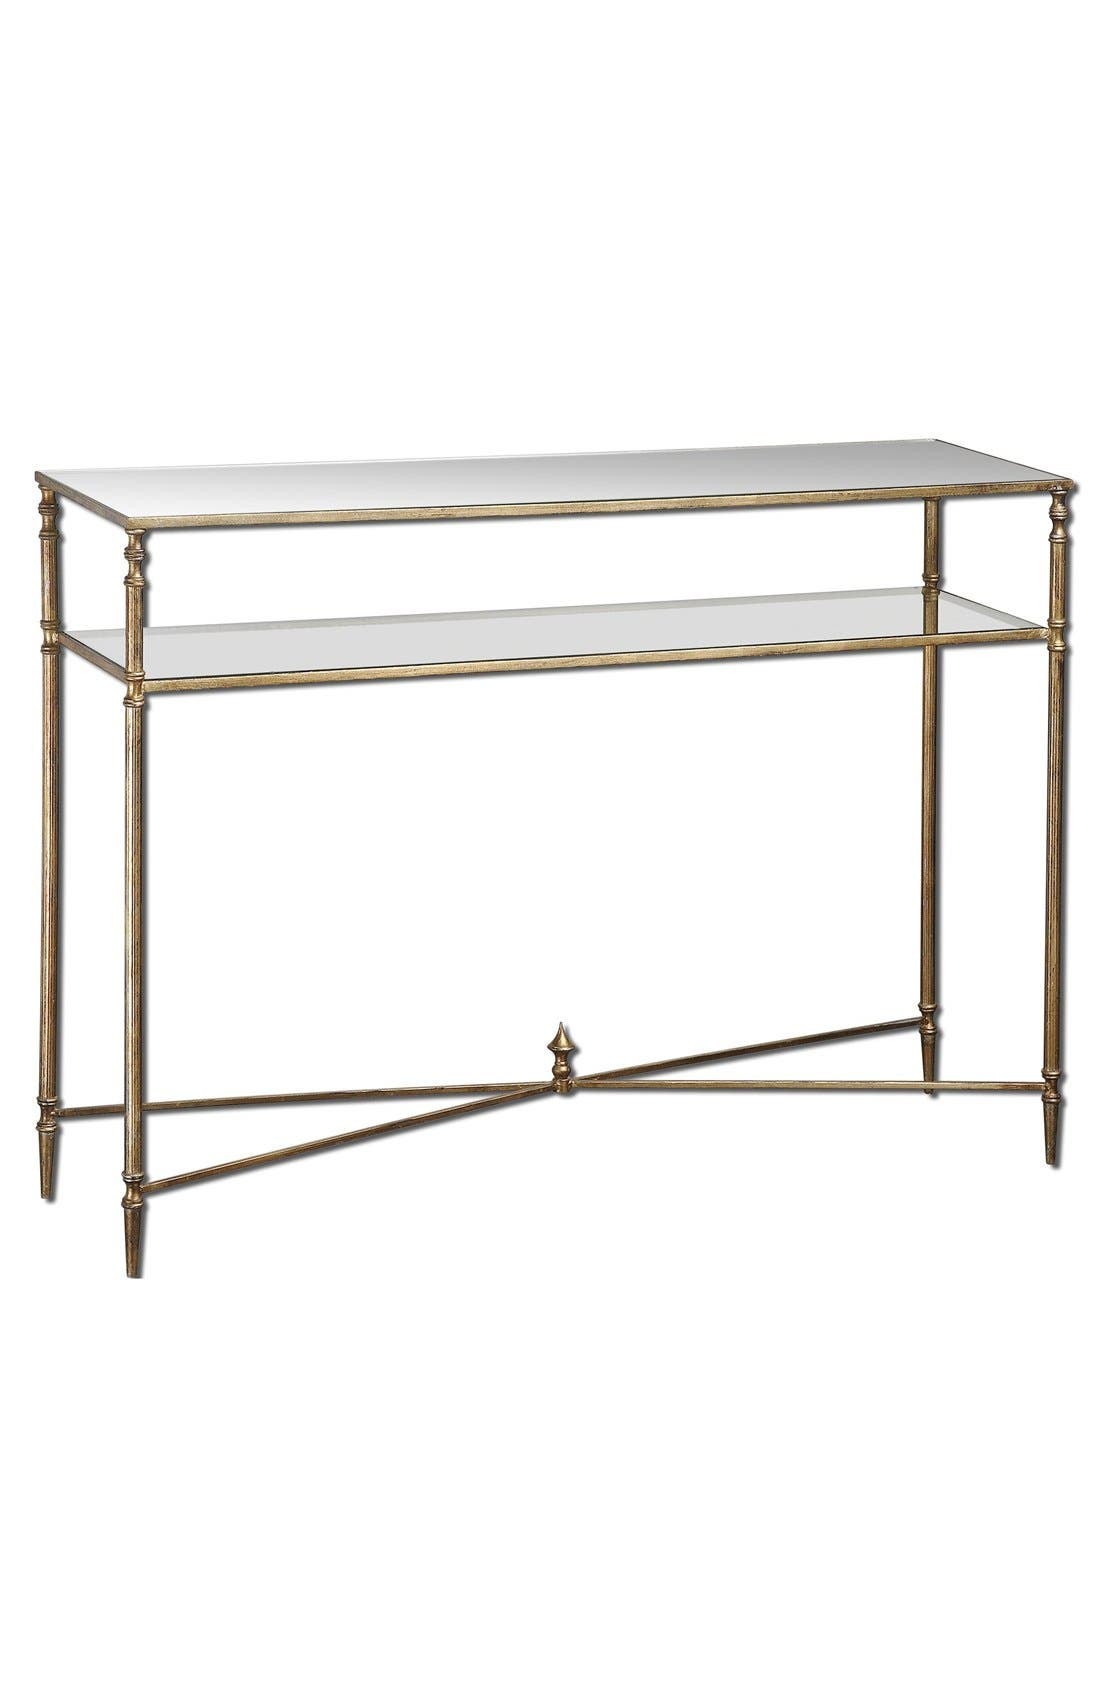 'Henzler' Mirrored Console Table,                             Main thumbnail 1, color,